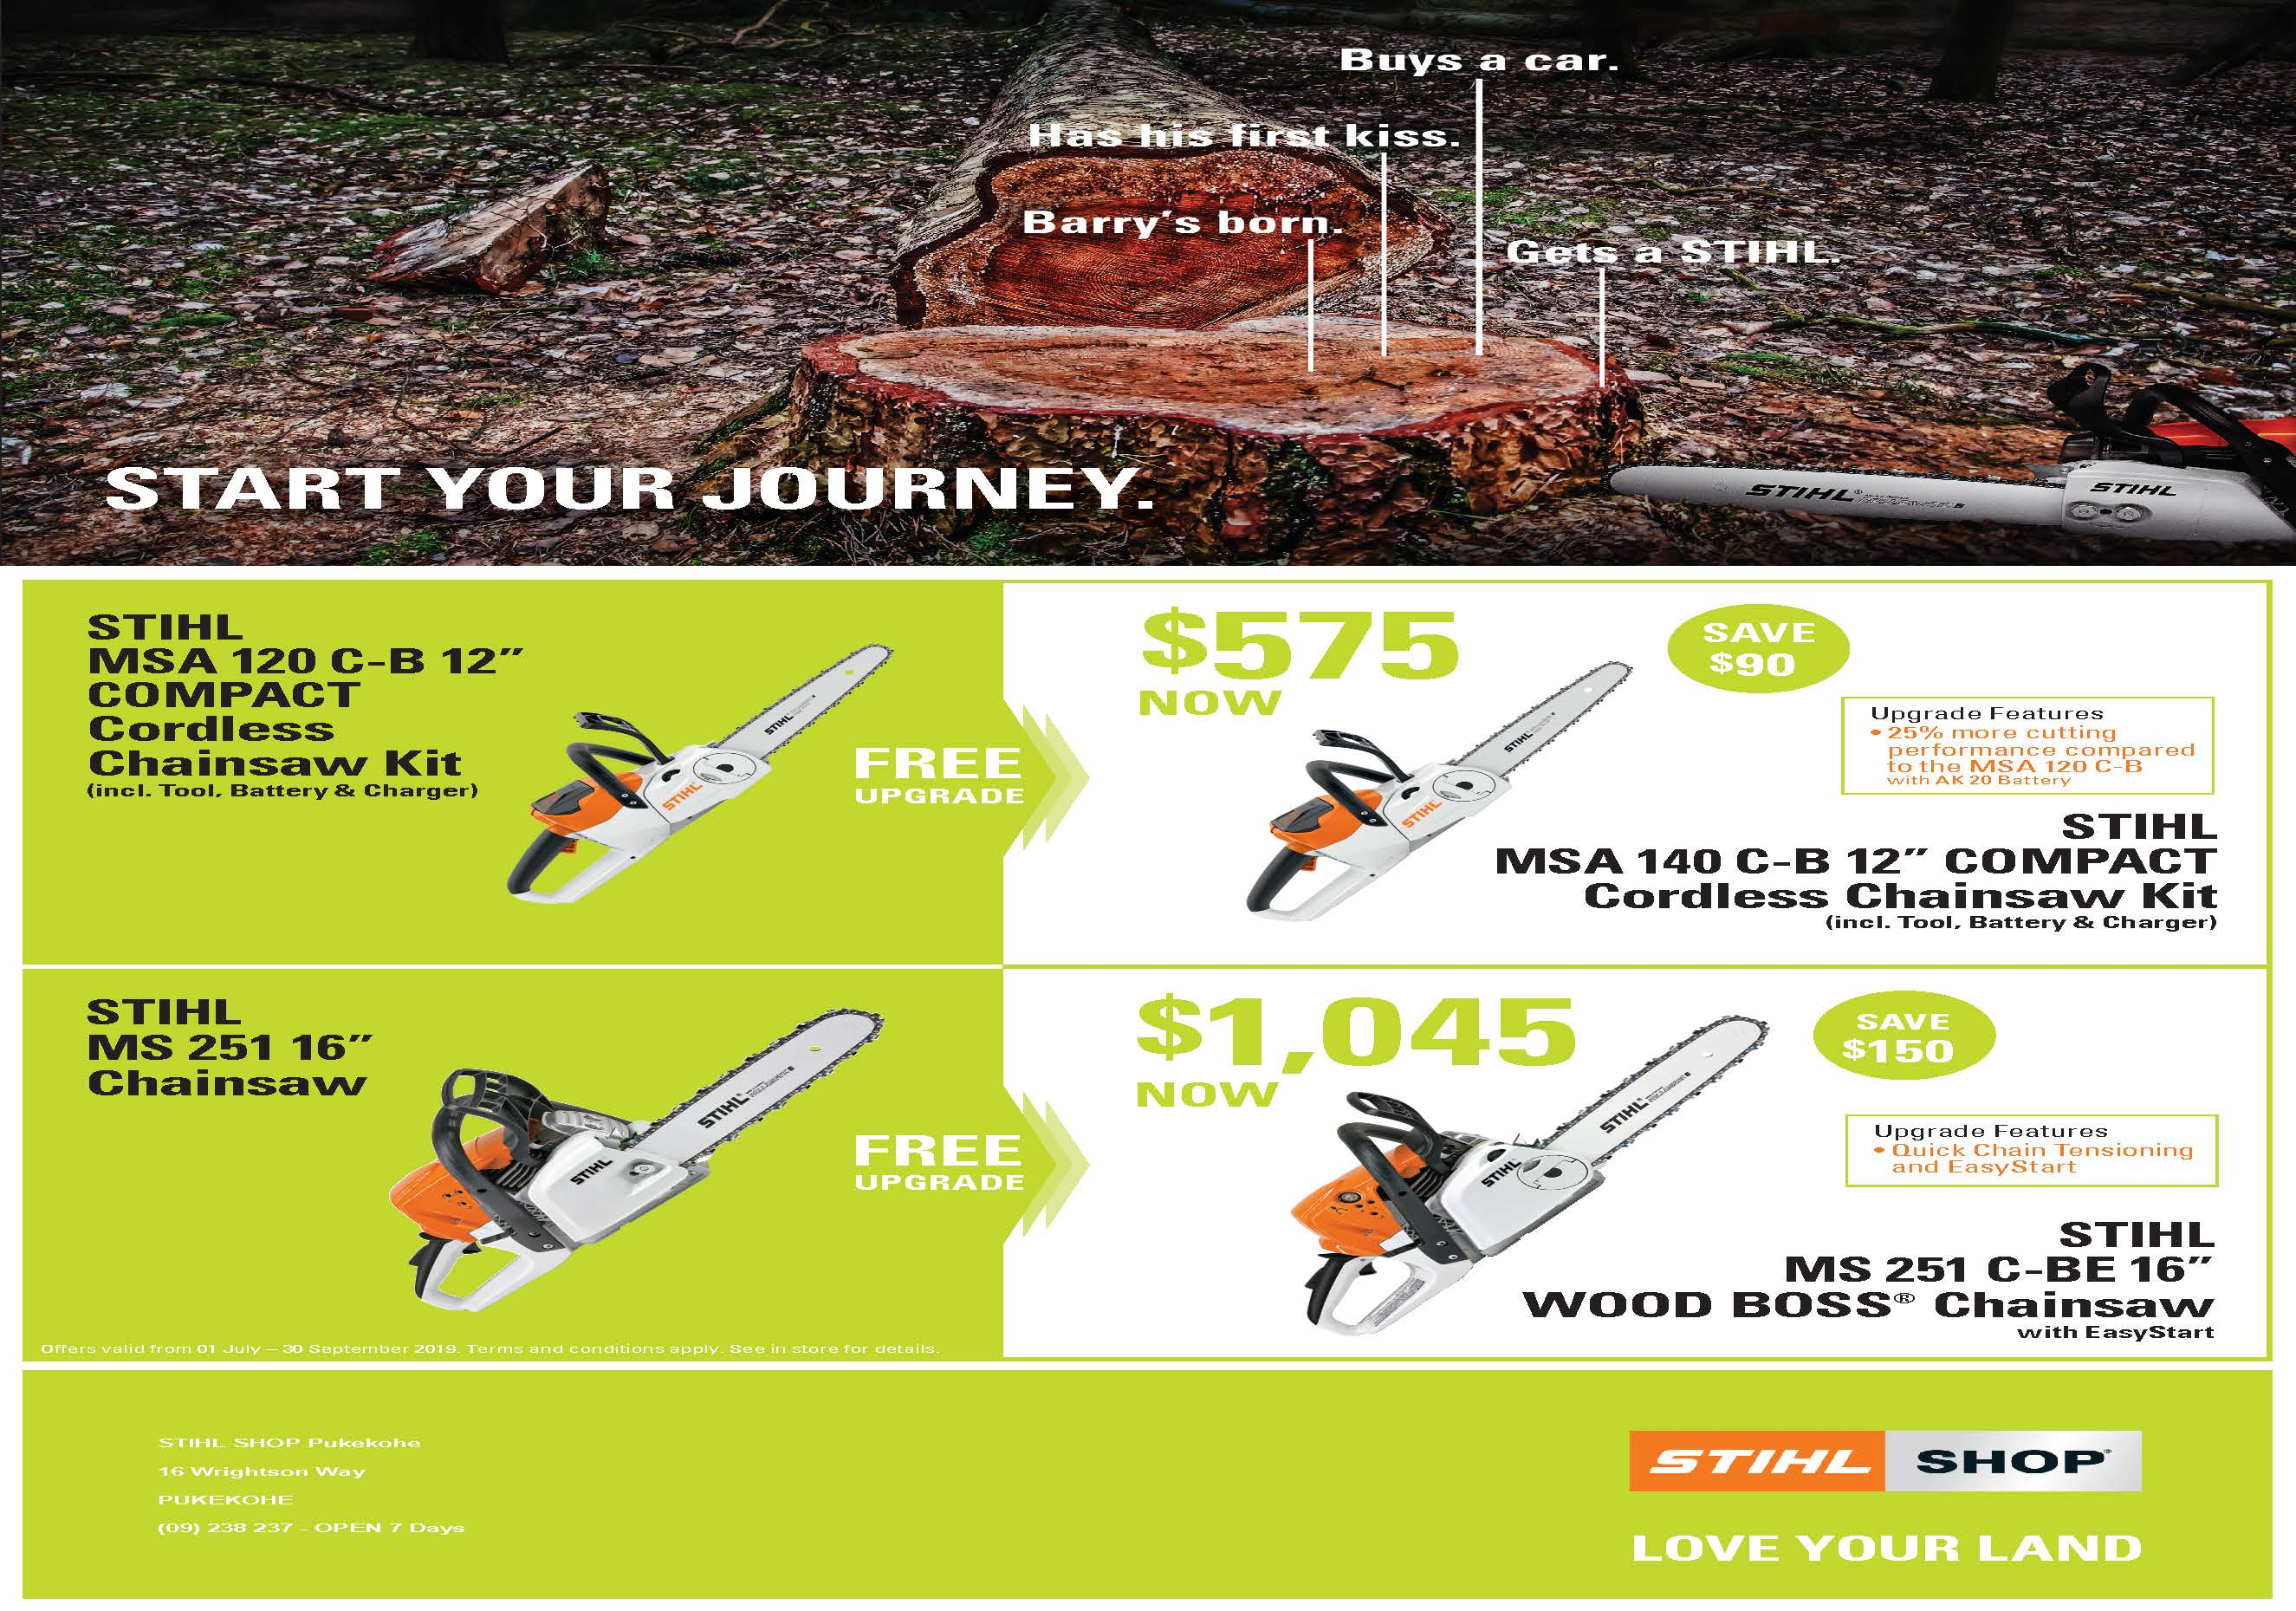 STIHL SHOP Pukekohe for Chainsaws Fireplaces Weber BBQs in Auckland NZ